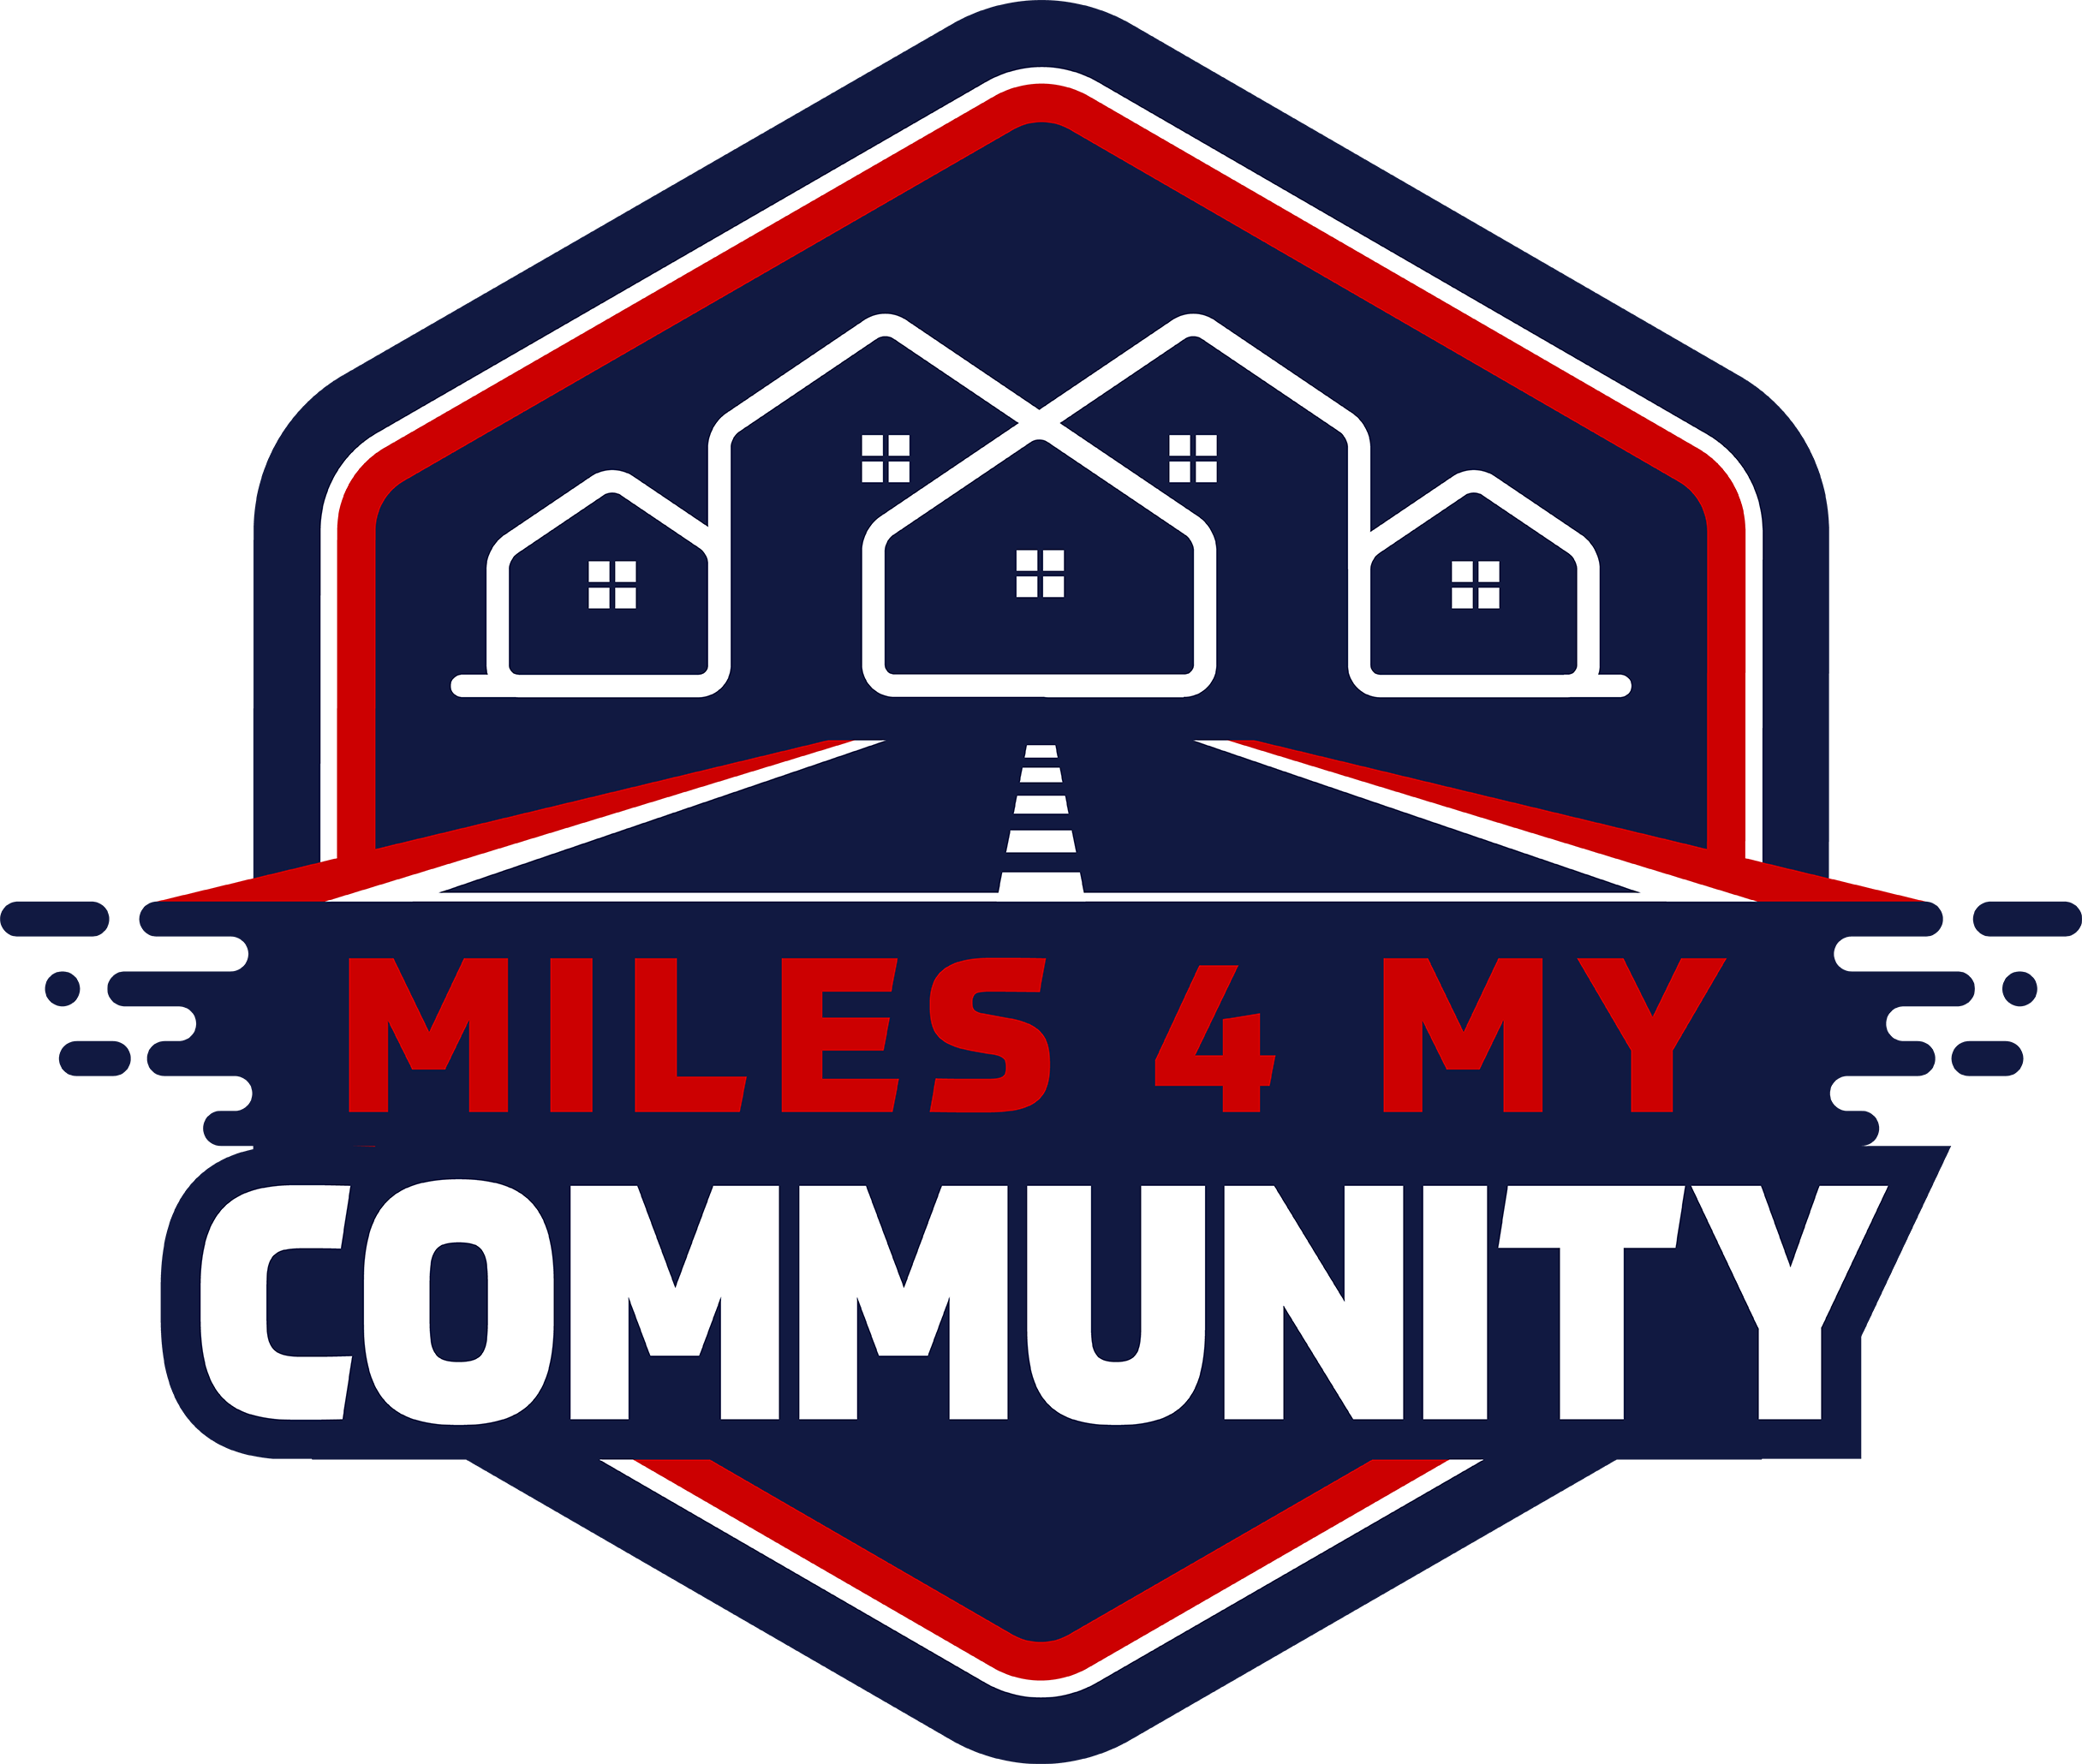 Miles 4 My Community Logo